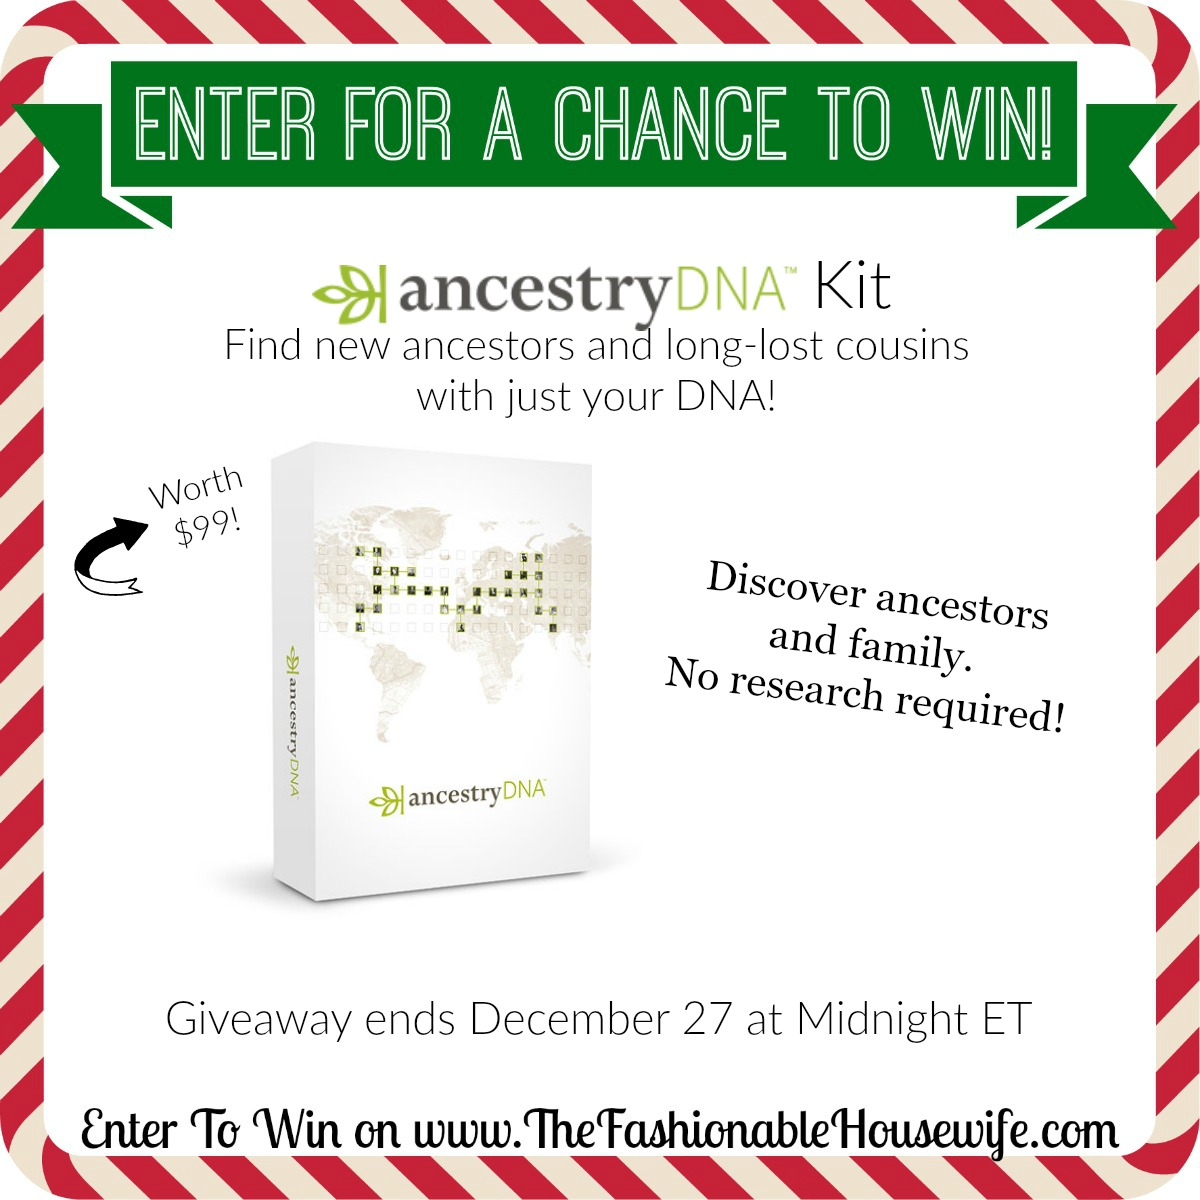 Enter To Win Ancestry DNA Kit